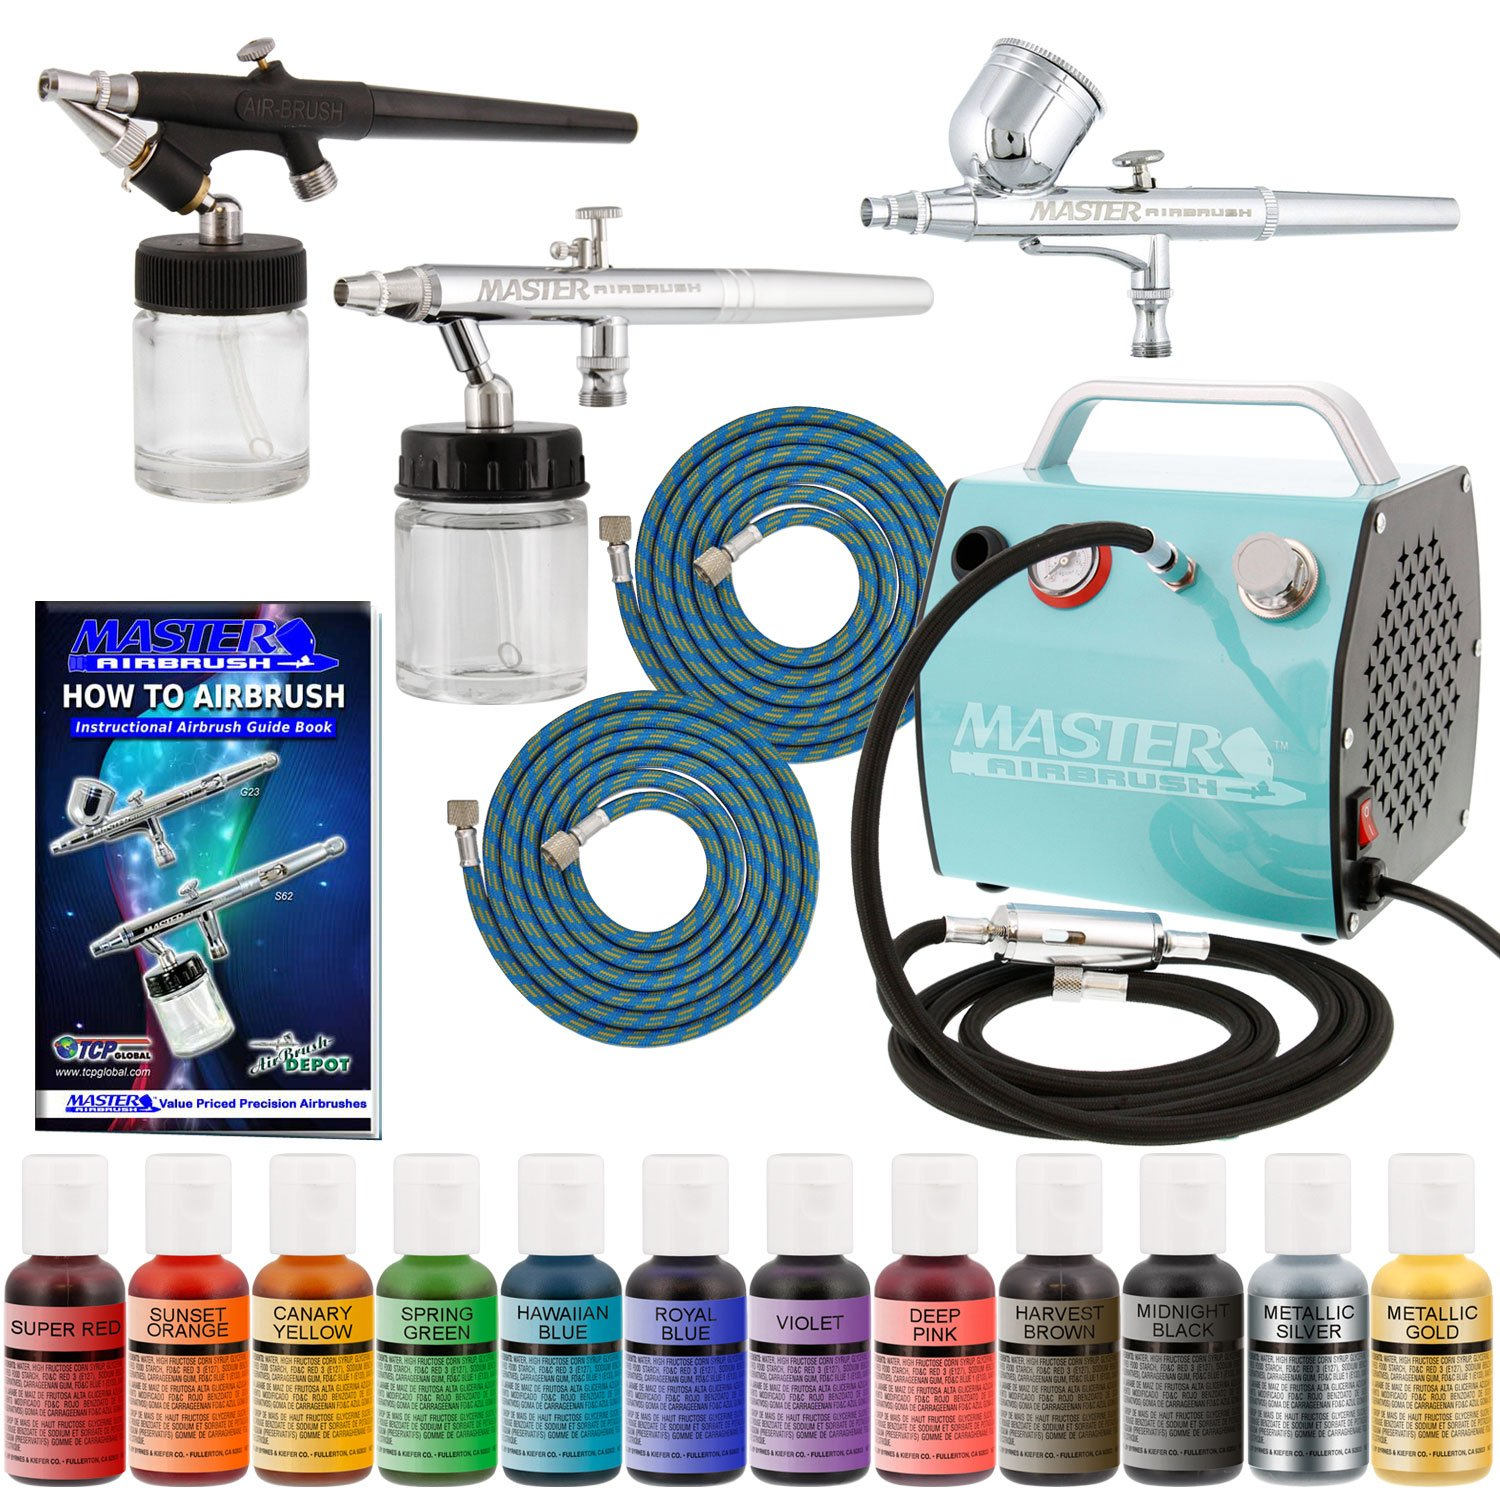 Bakery Airbrush Cake Kit with 3 Airbrushes, Compressor, 2 Air Hoses & 12 Color Chefmaster Food Coloring Set, .7 fl ounce Master Airbrush KIT-CAKE-SALON3